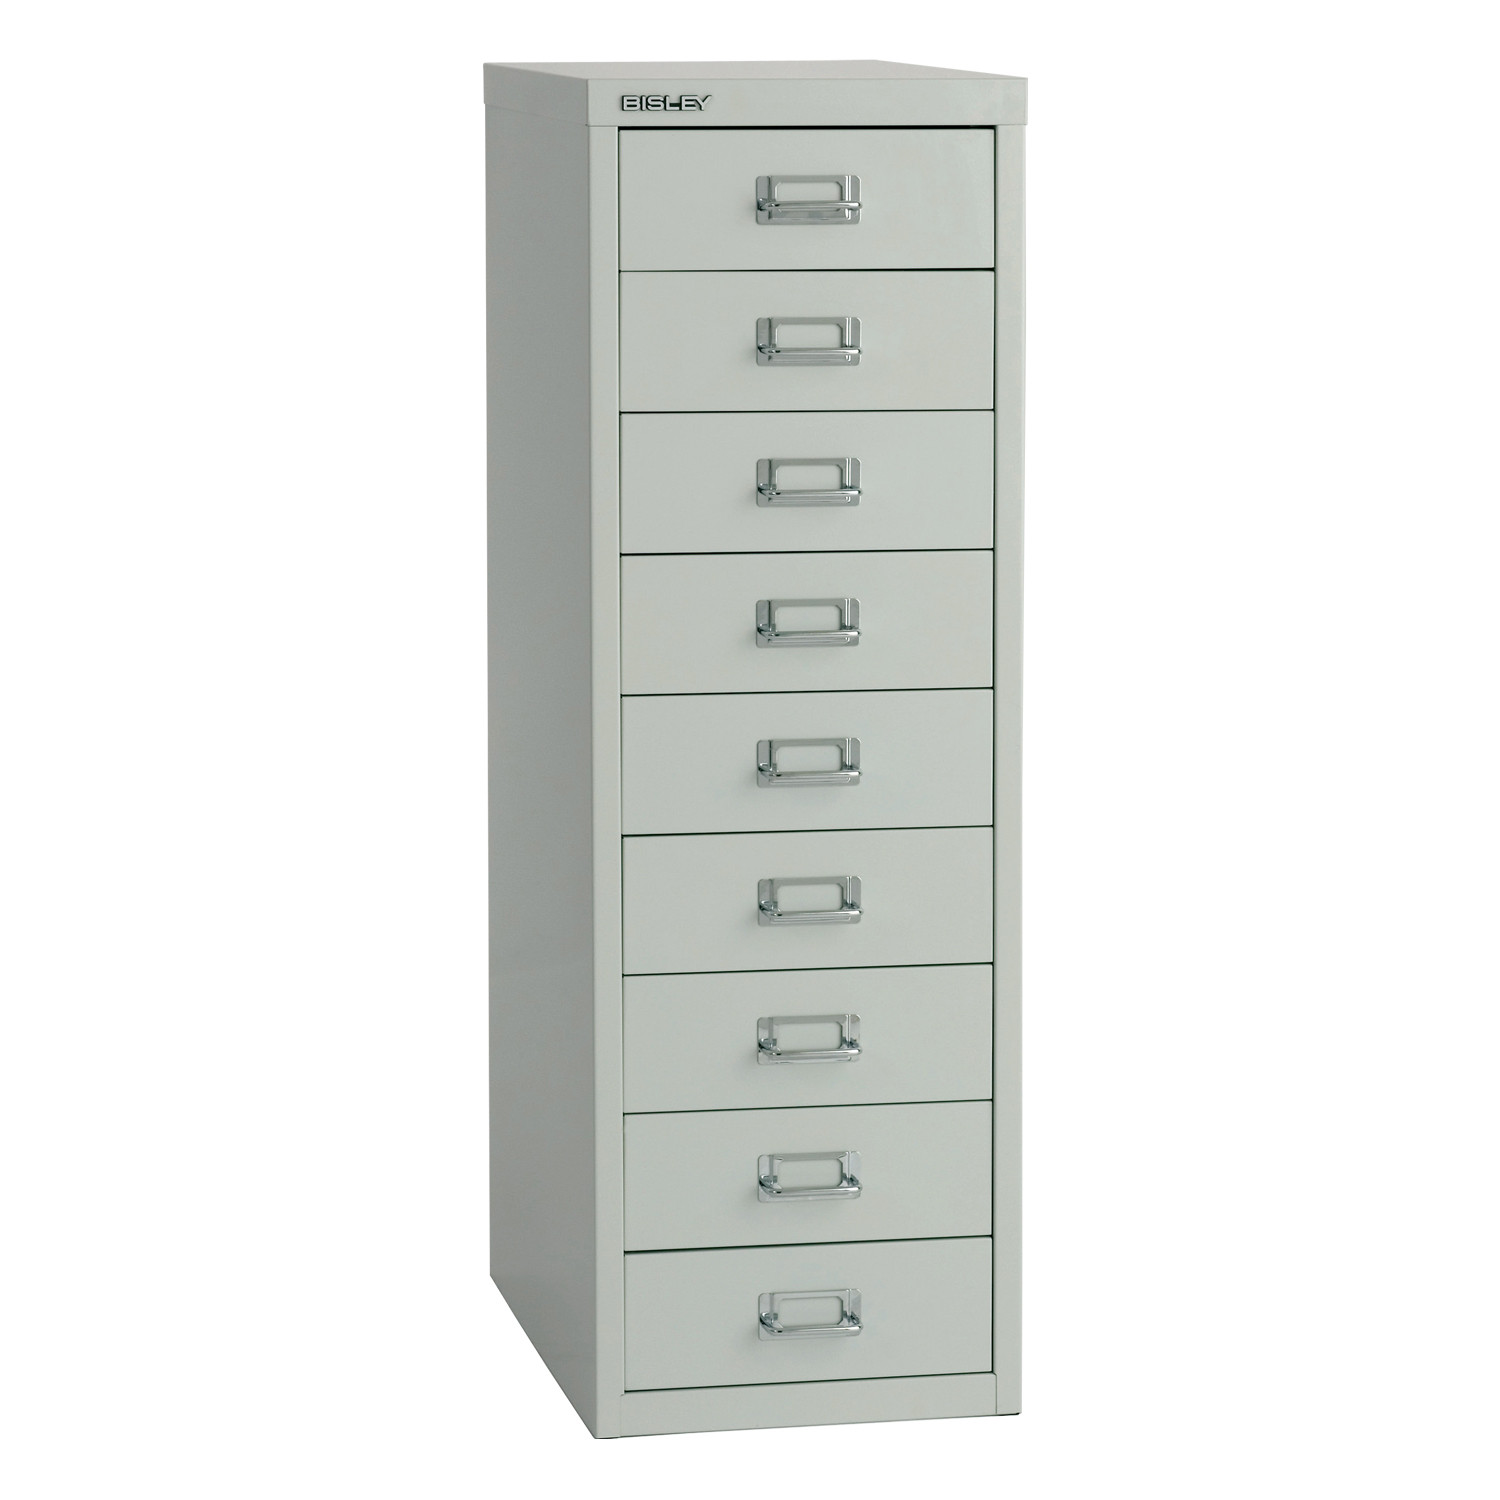 39 Series A3 Multidrawers Cabinet